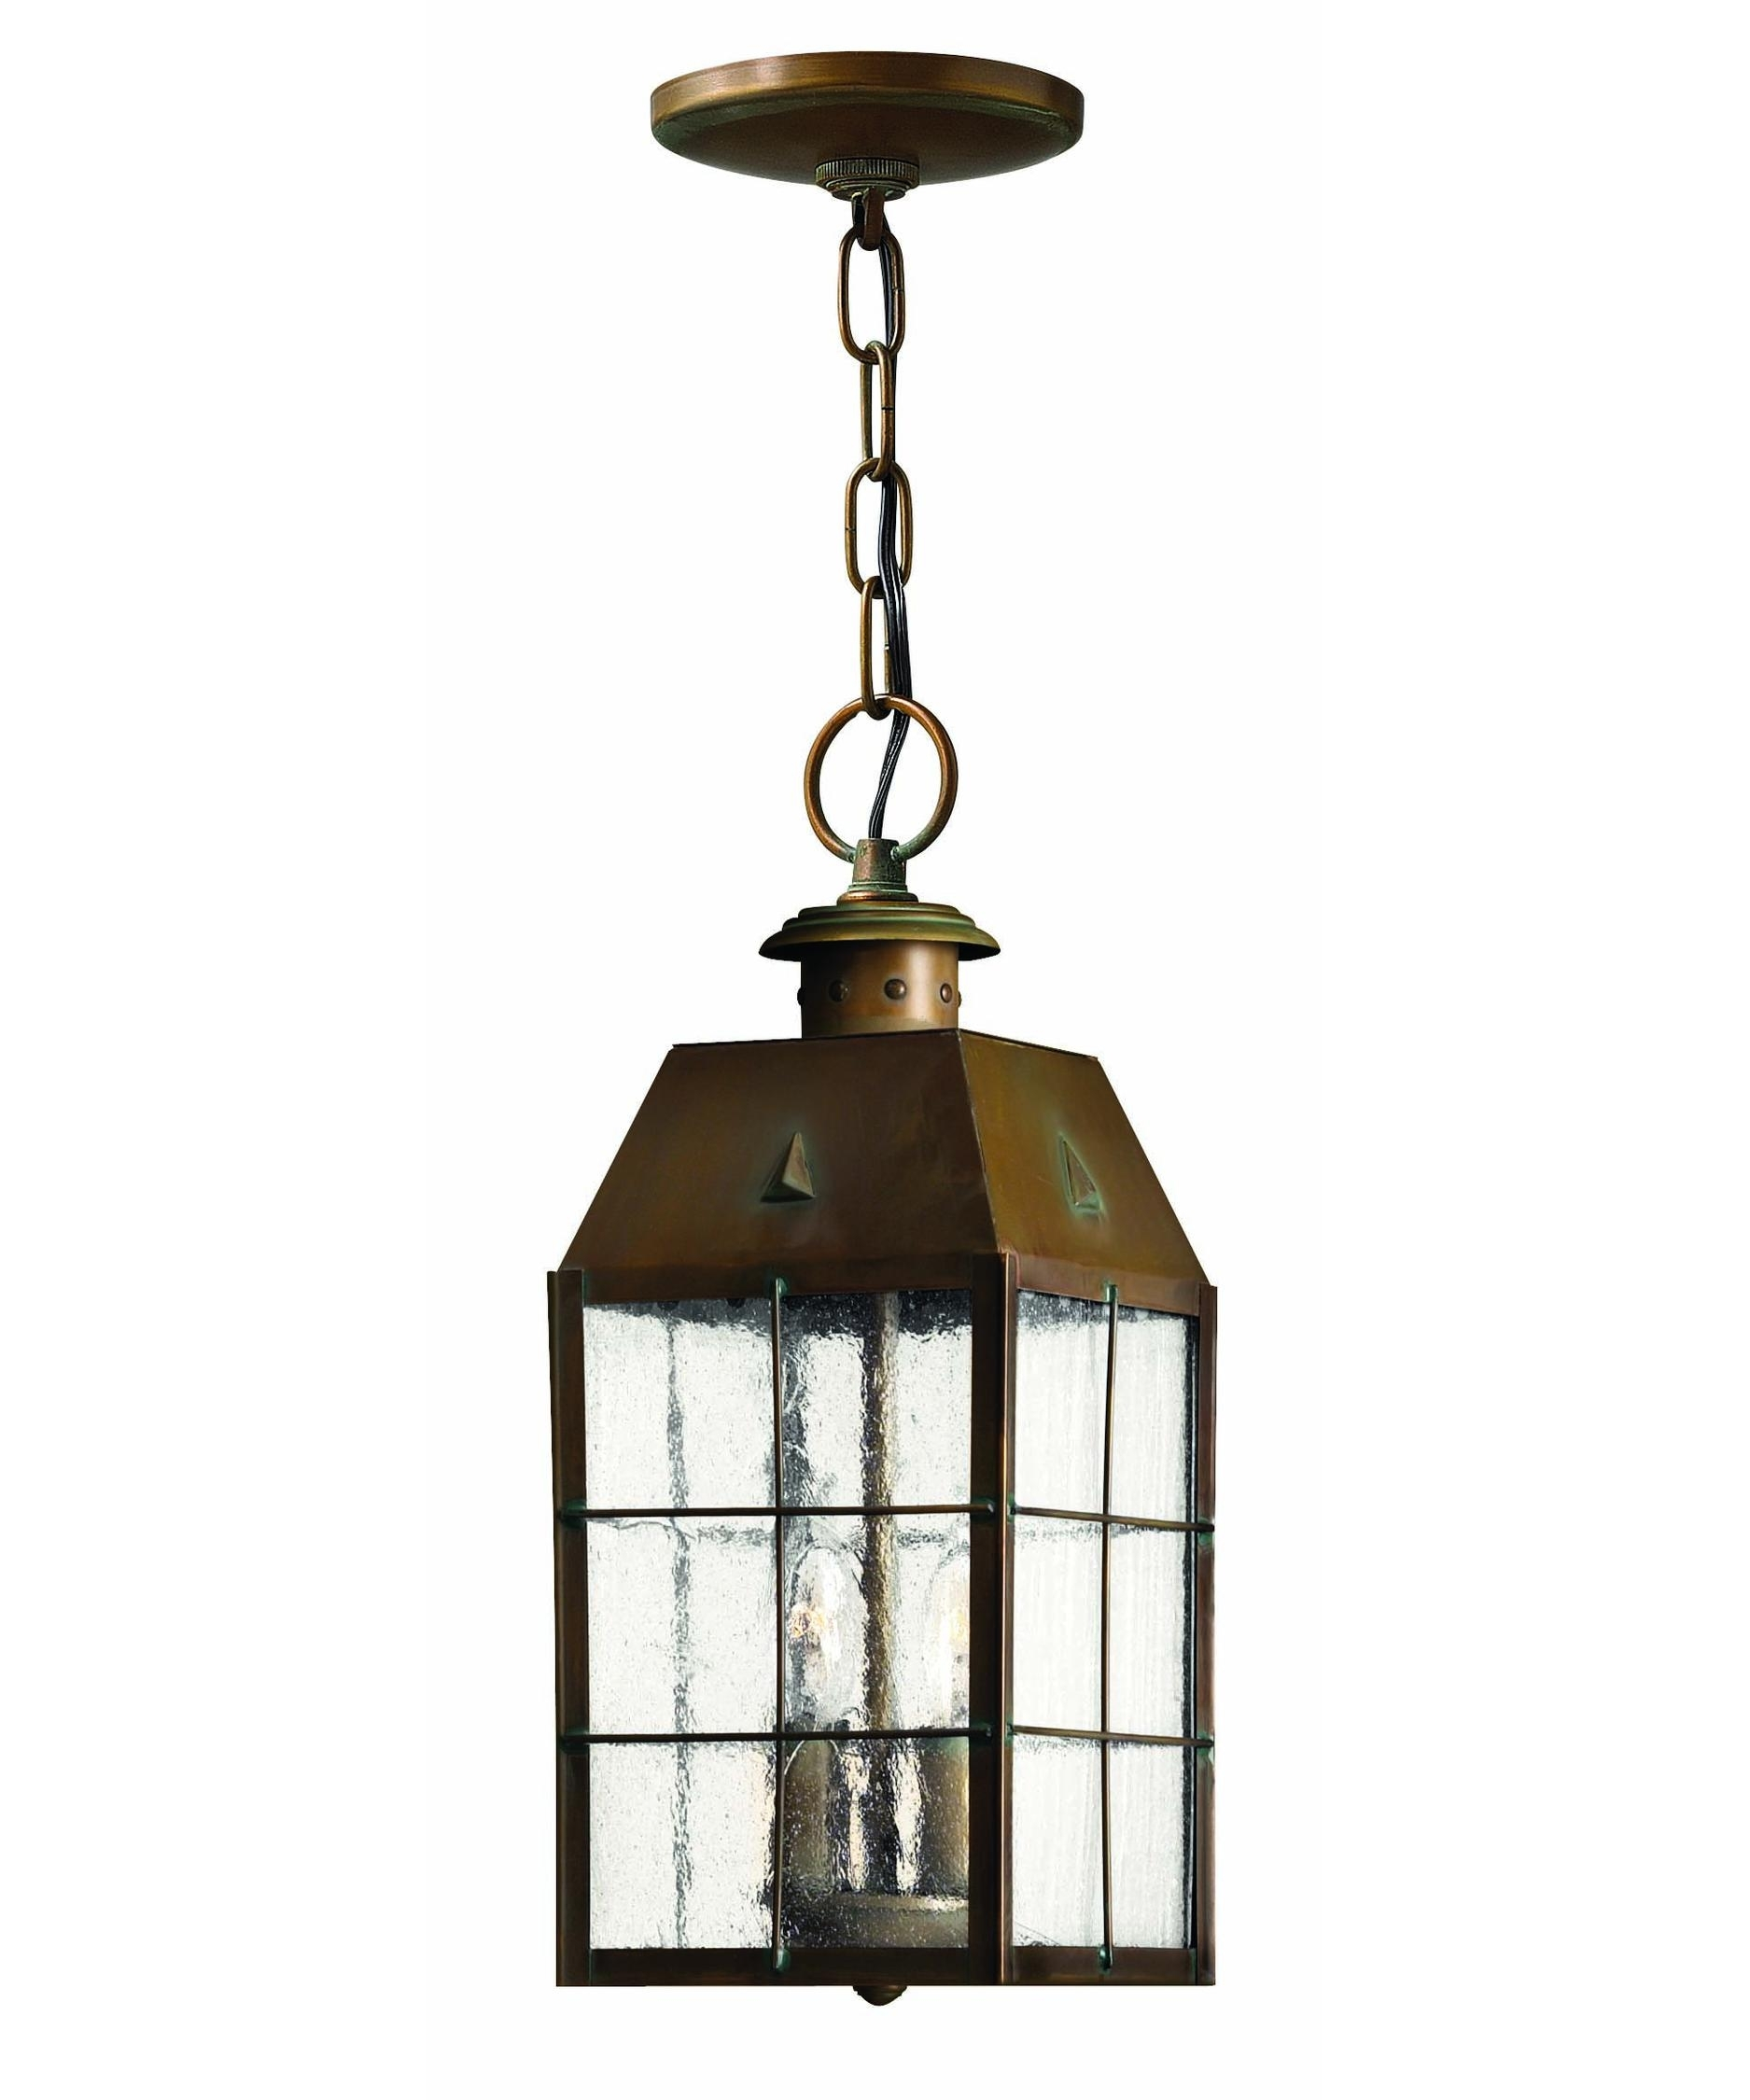 Ceiling Mount Porch Light Outdoor Flush Lighting Fixtures For Patio Pertaining To Outdoor Hanging Lanterns With Stand (View 10 of 15)